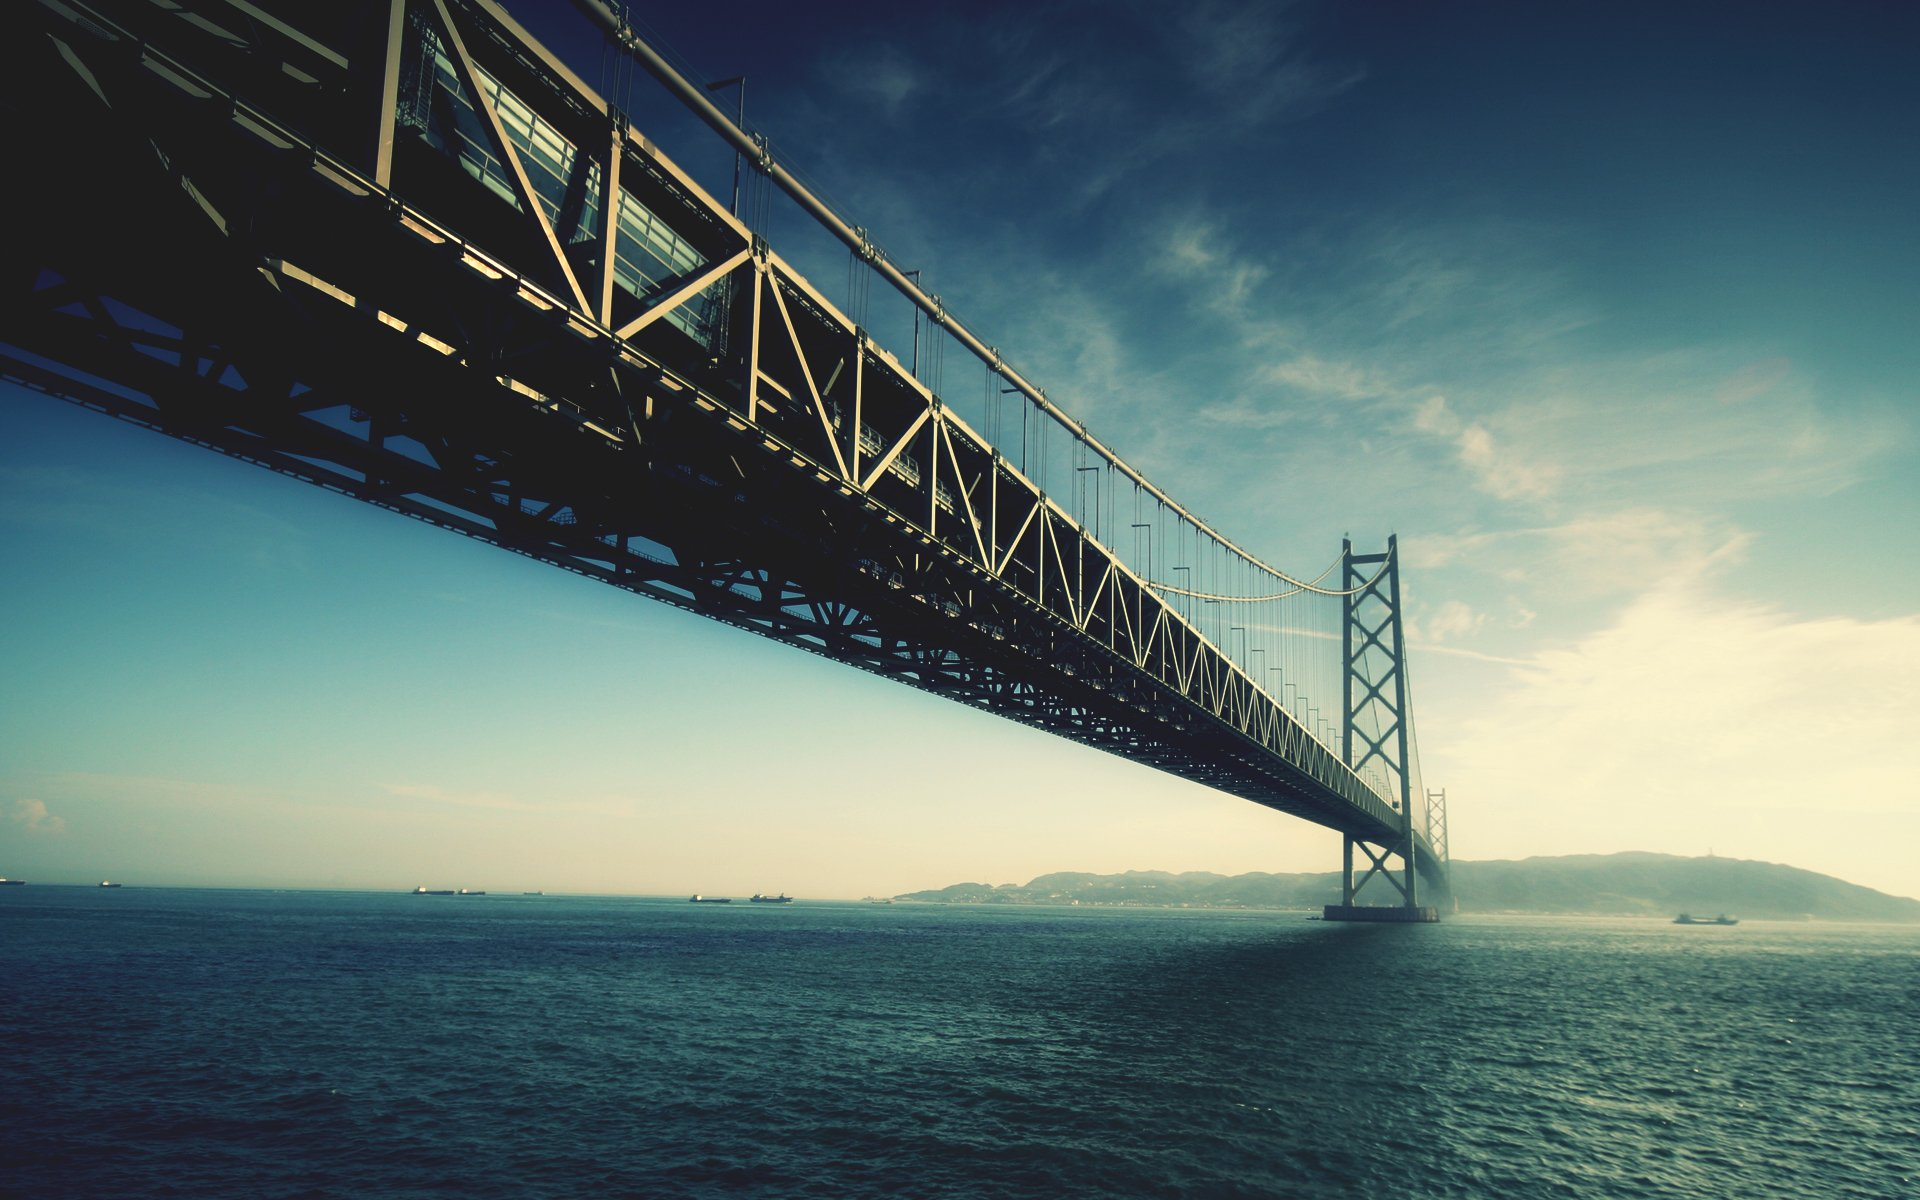 bridge wallpaper download this wallpaper by tonvanalebeek submitted by 1920x1200